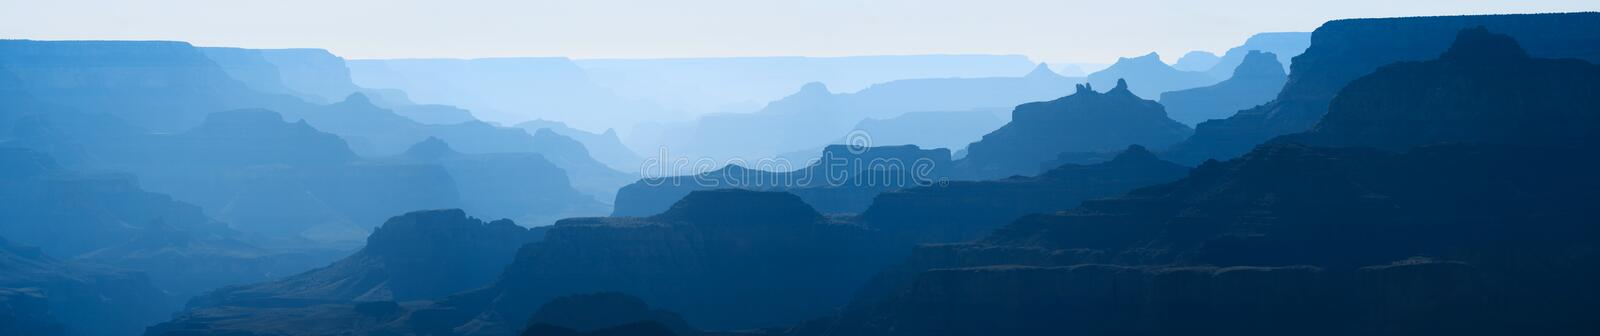 Grand Canyon überlagert Panorama lizenzfreies stockfoto